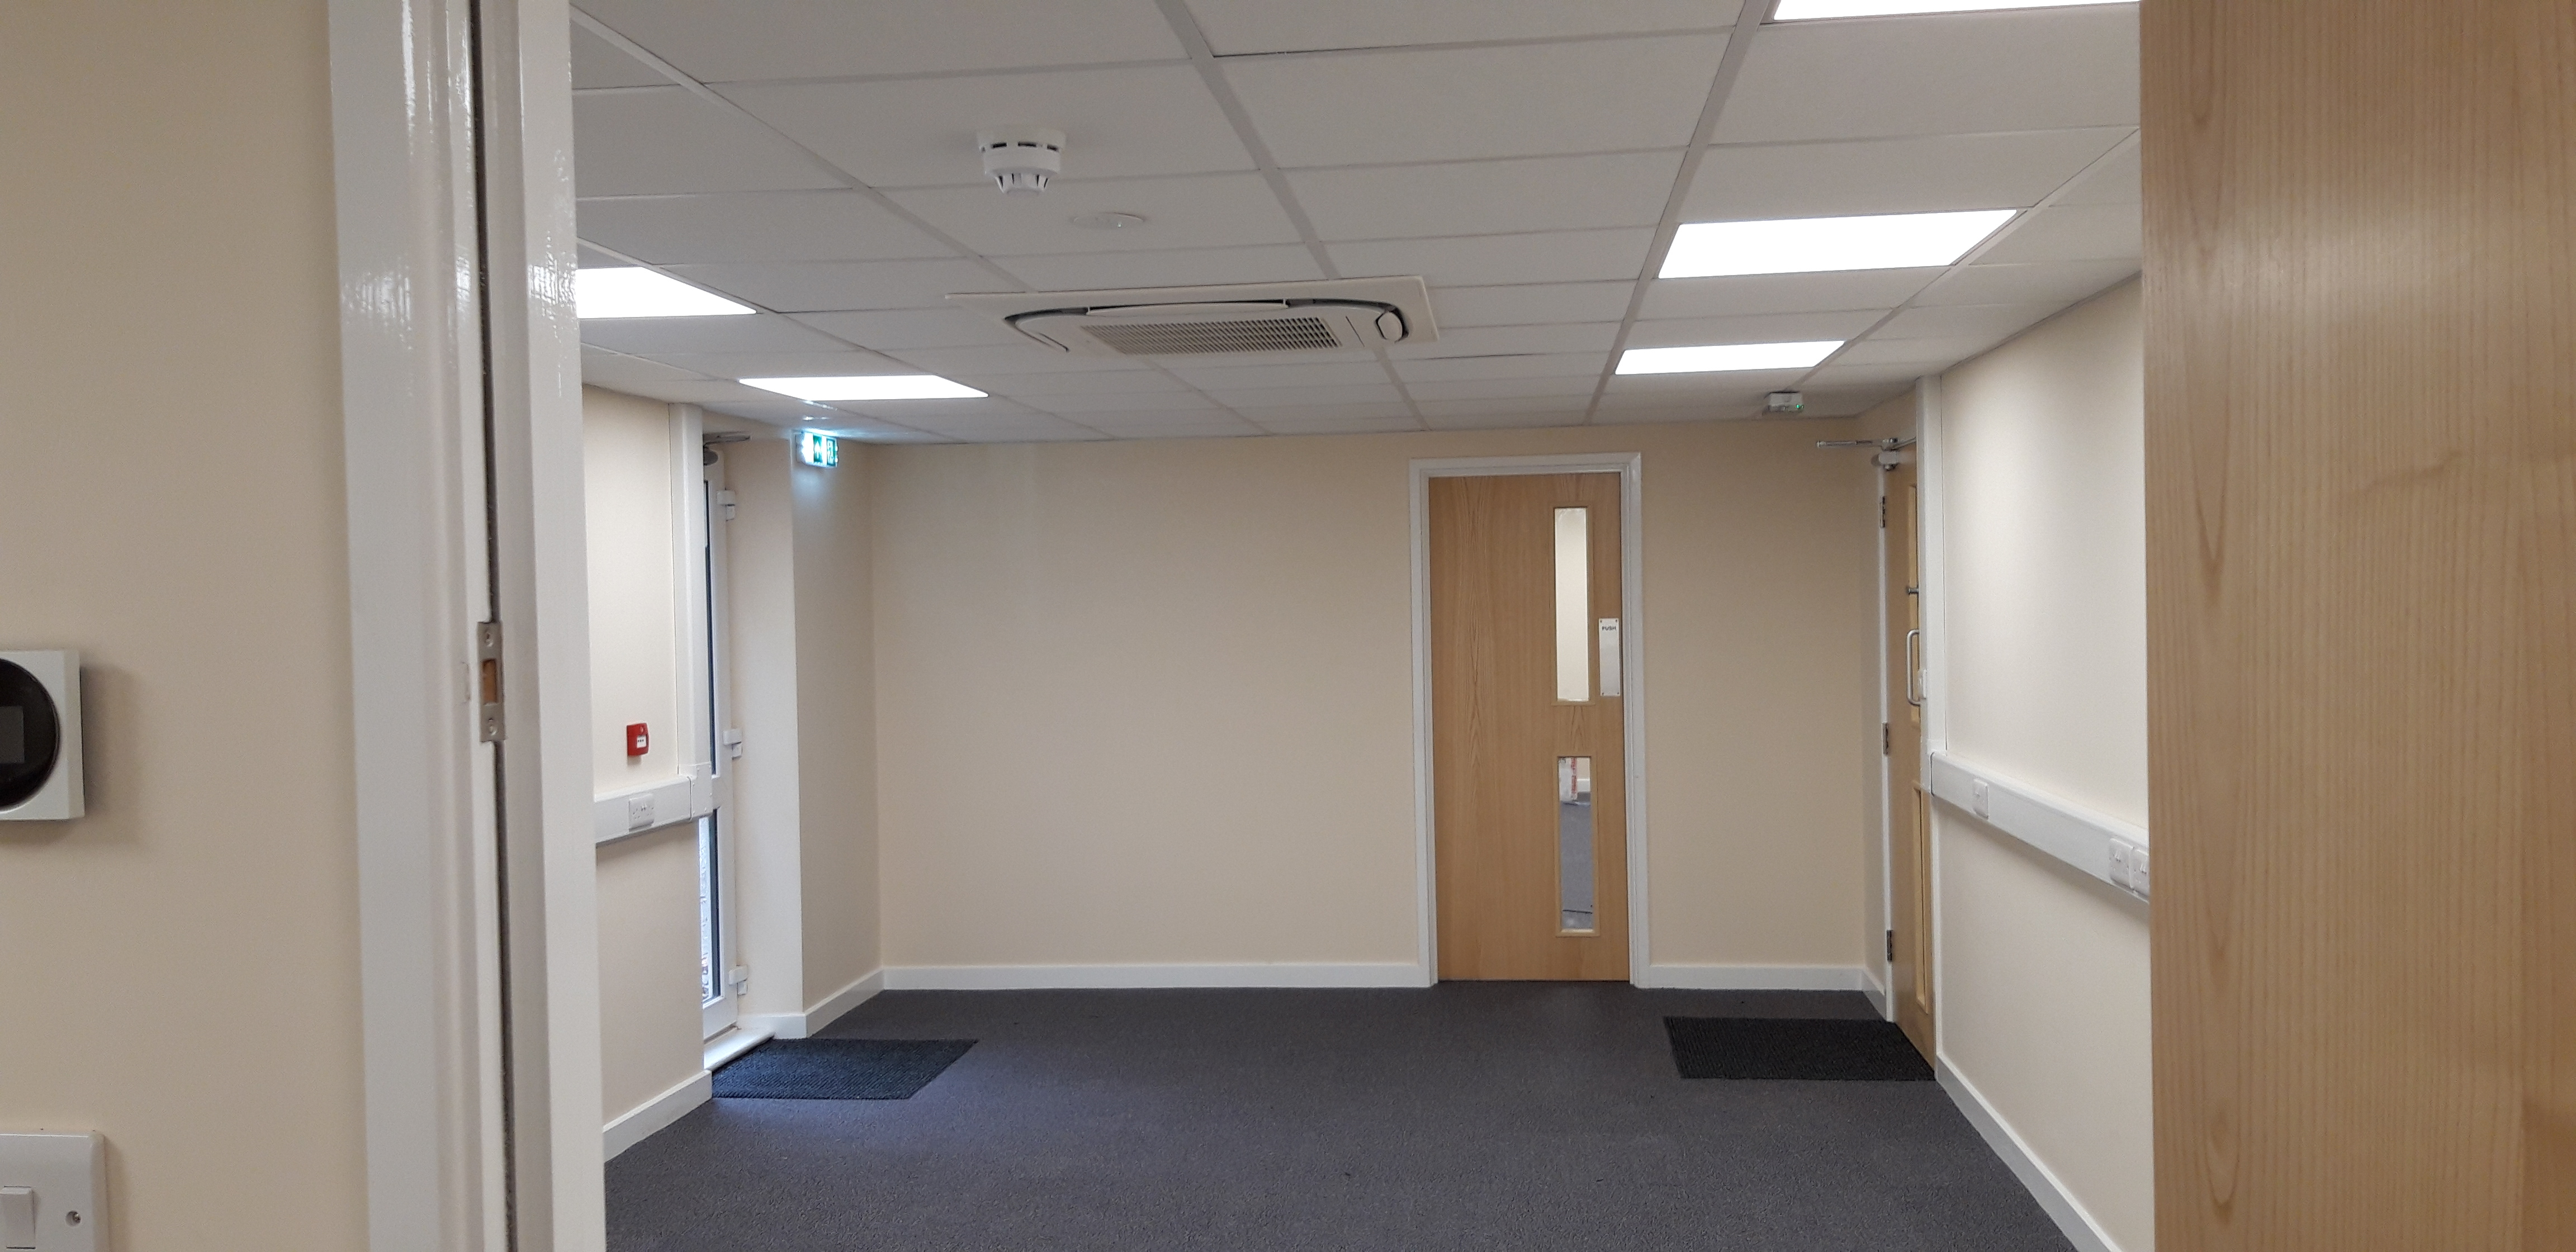 bristol electrician for office wiring installations